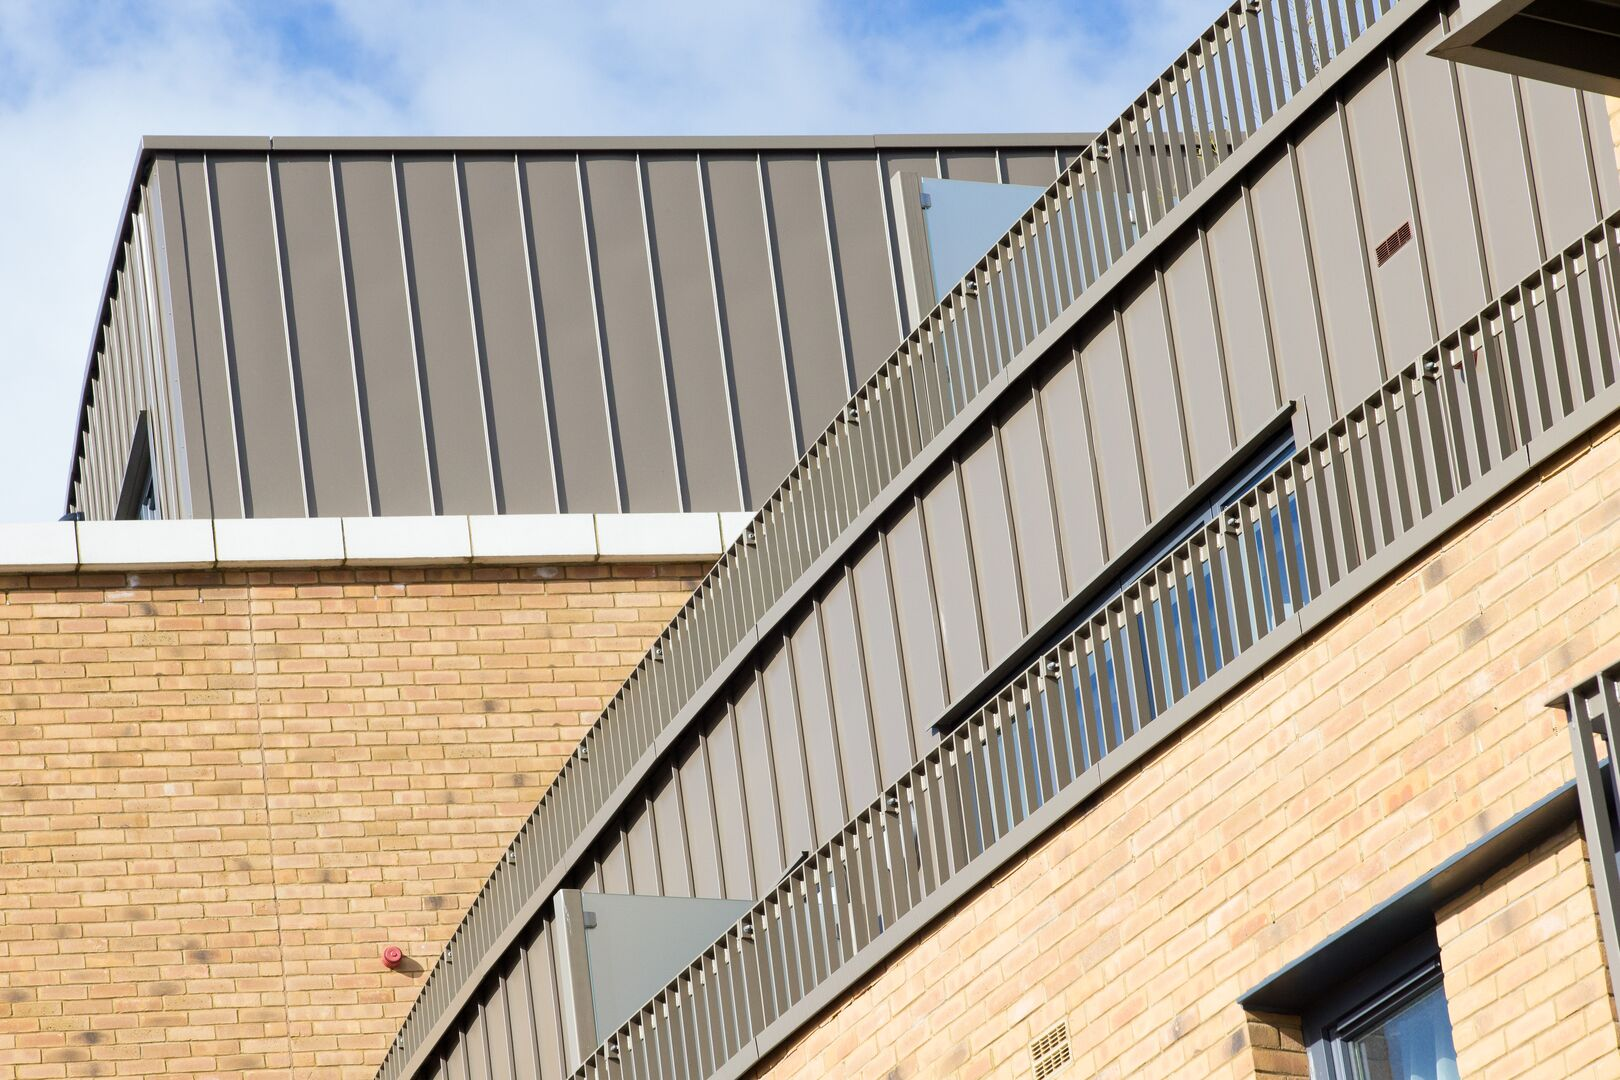 newman house residential colorcoat urban tata steel construction